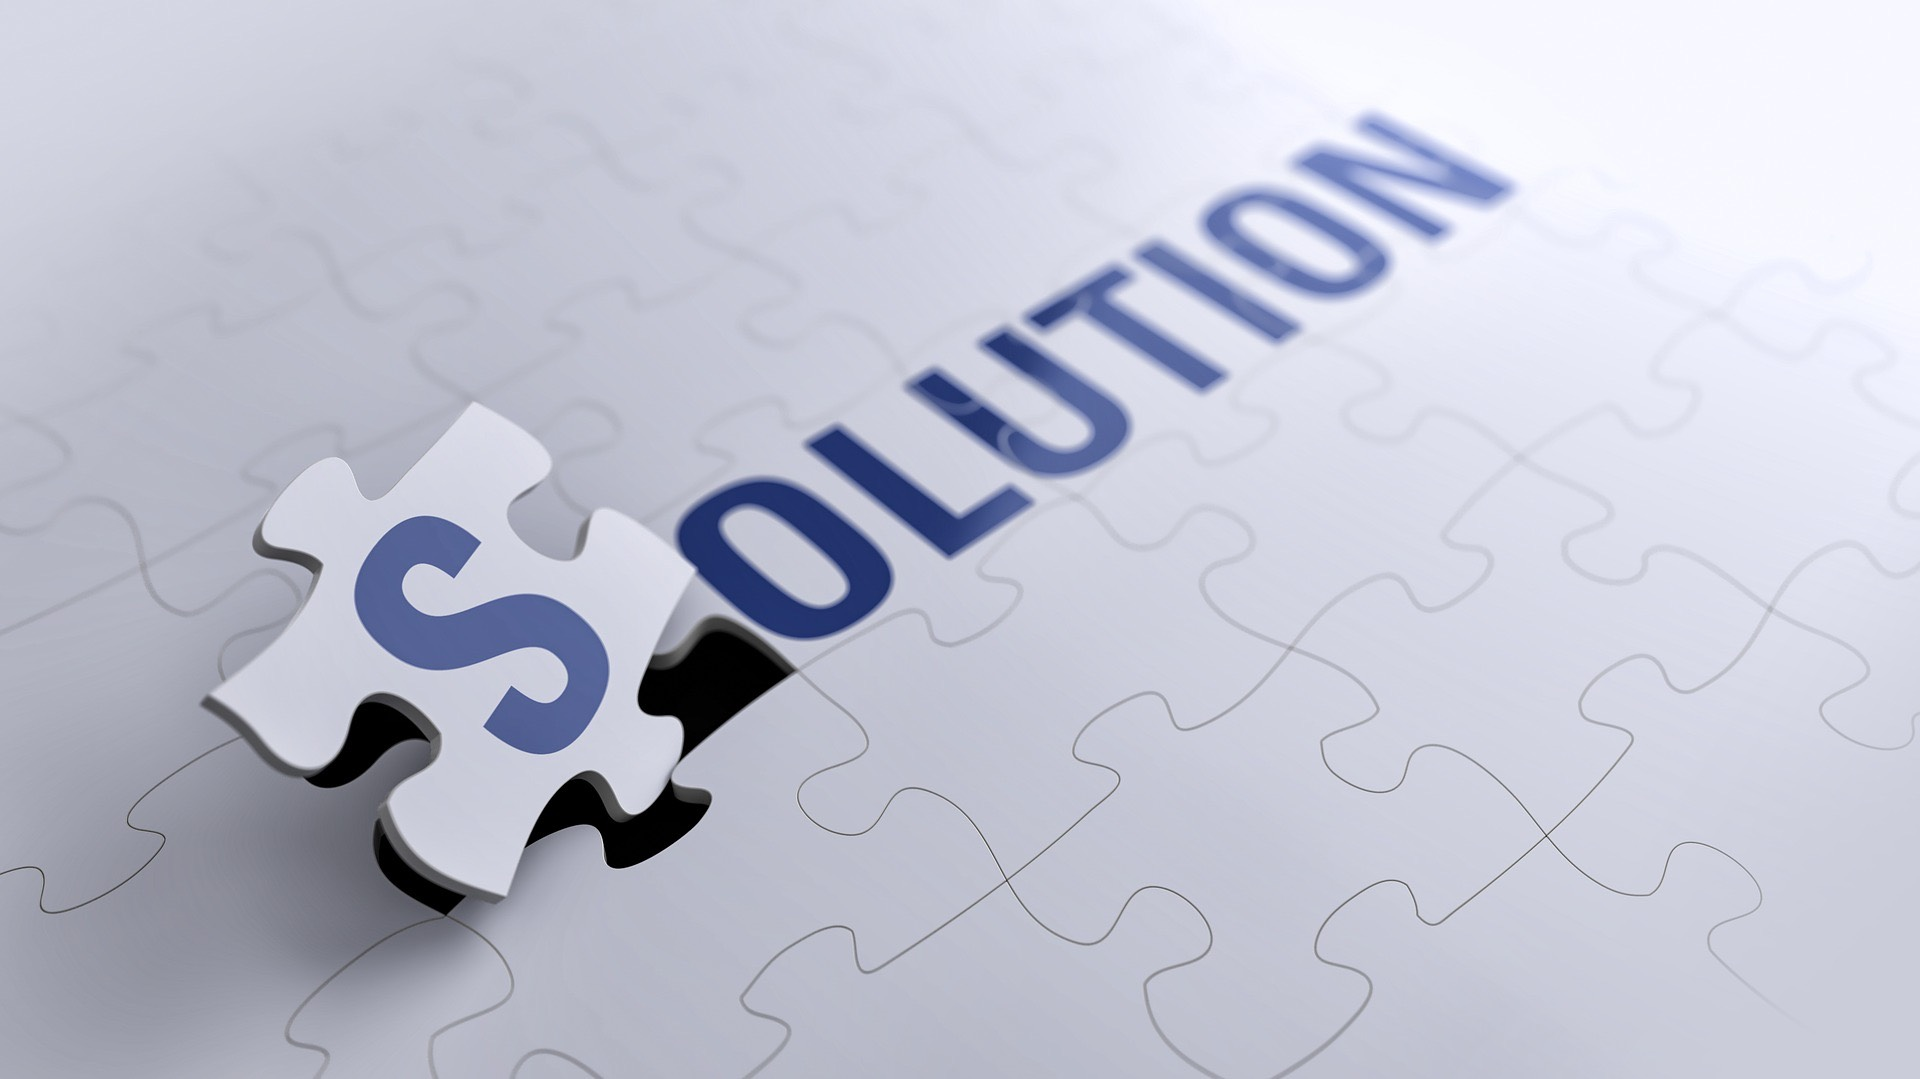 See the Problems We Help Solve